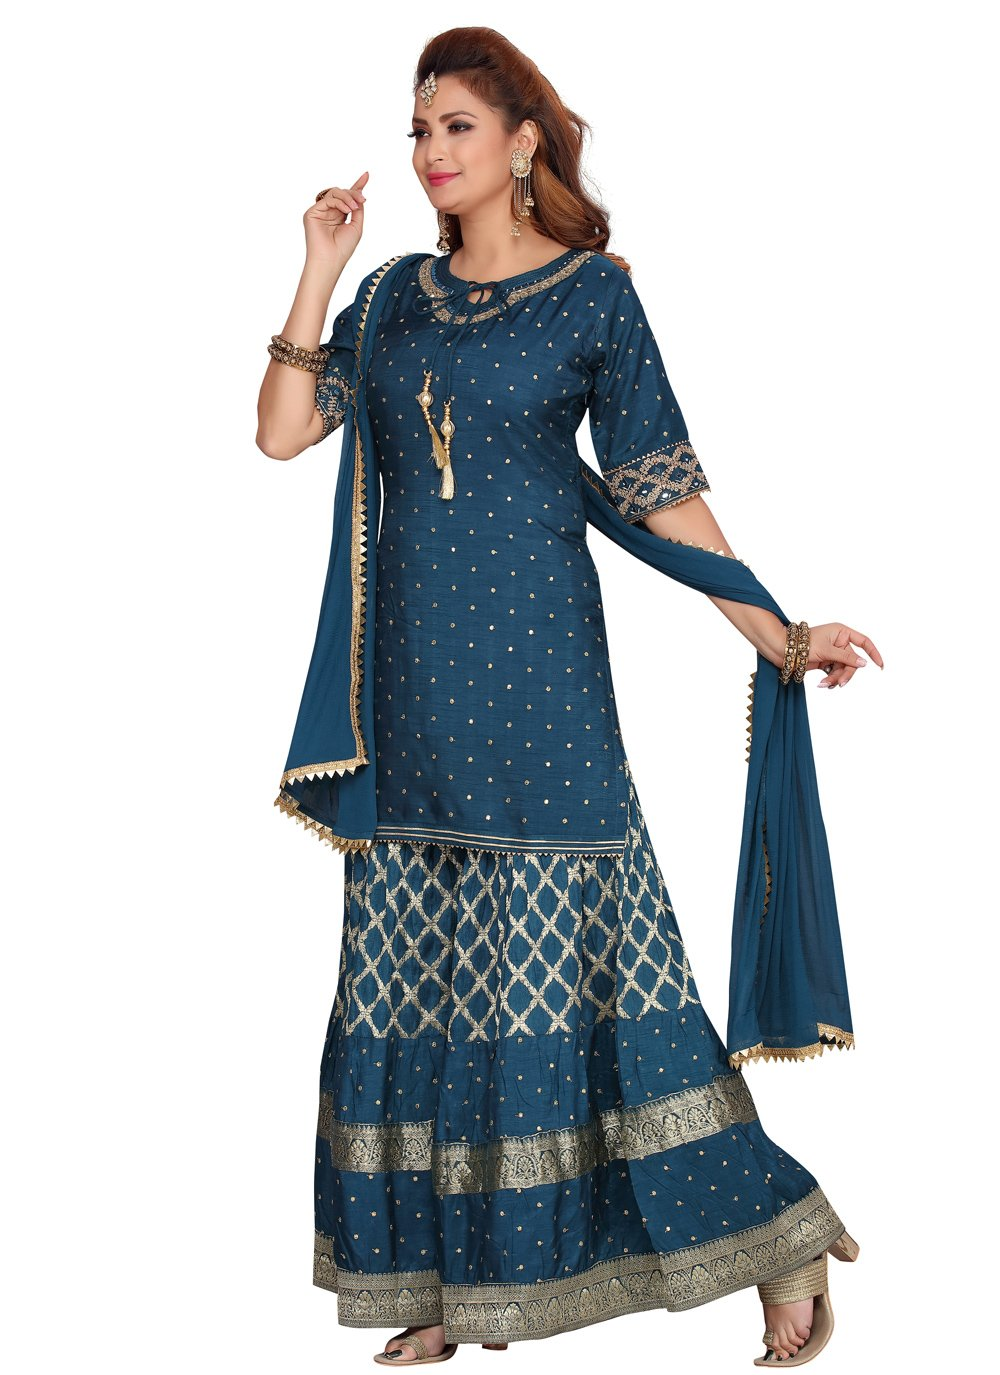 Fancy Banarasi Silk Readymade Suit in Navy Blue